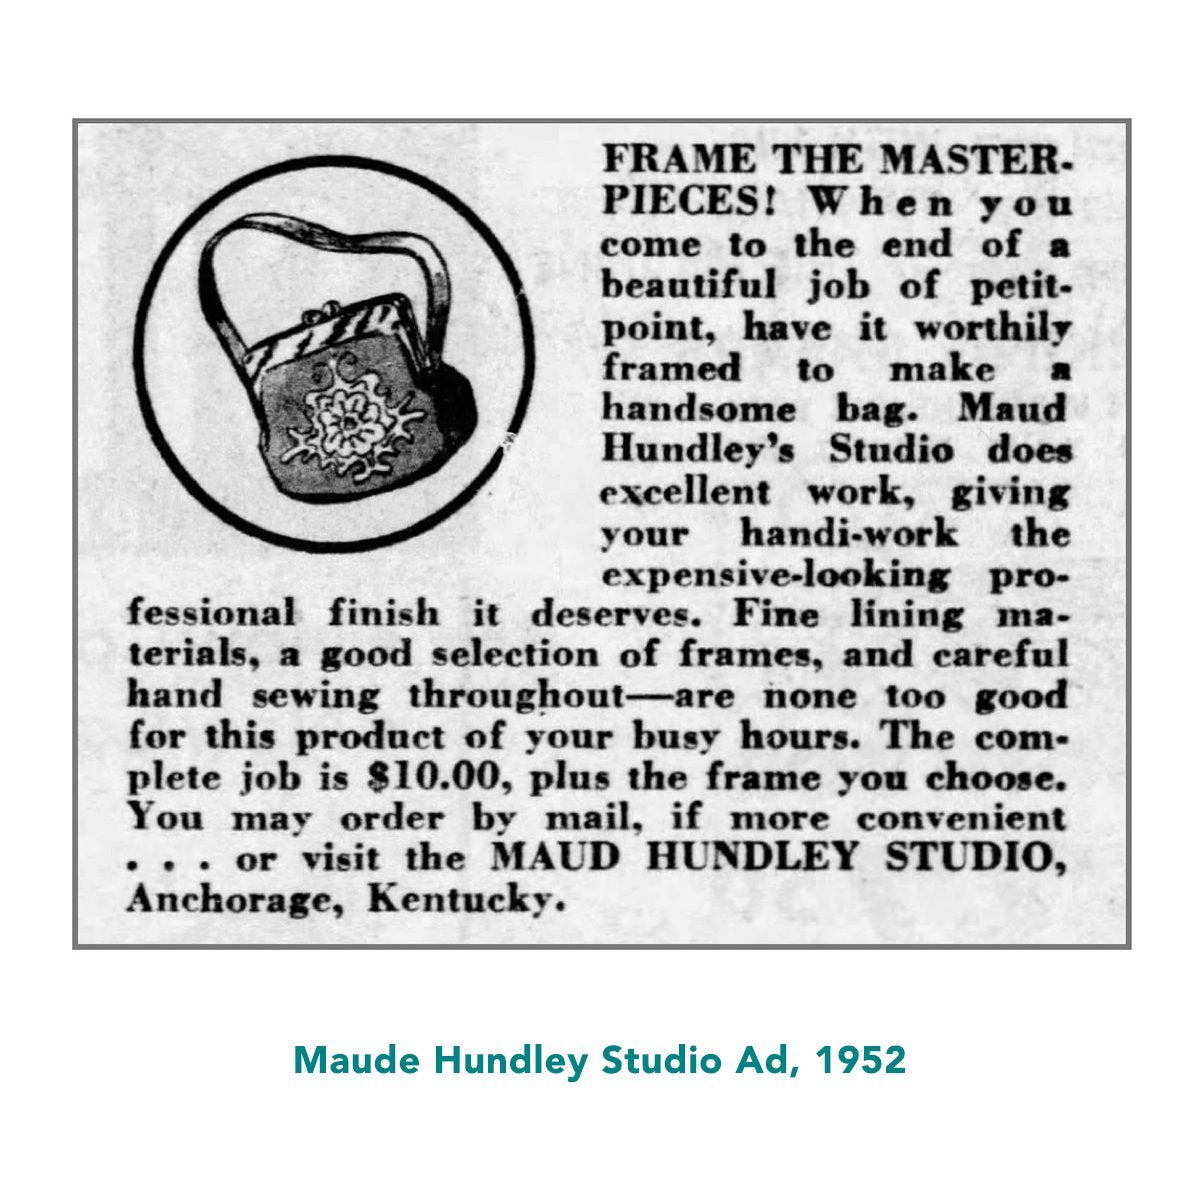 Maud Hundley advertisement 1952